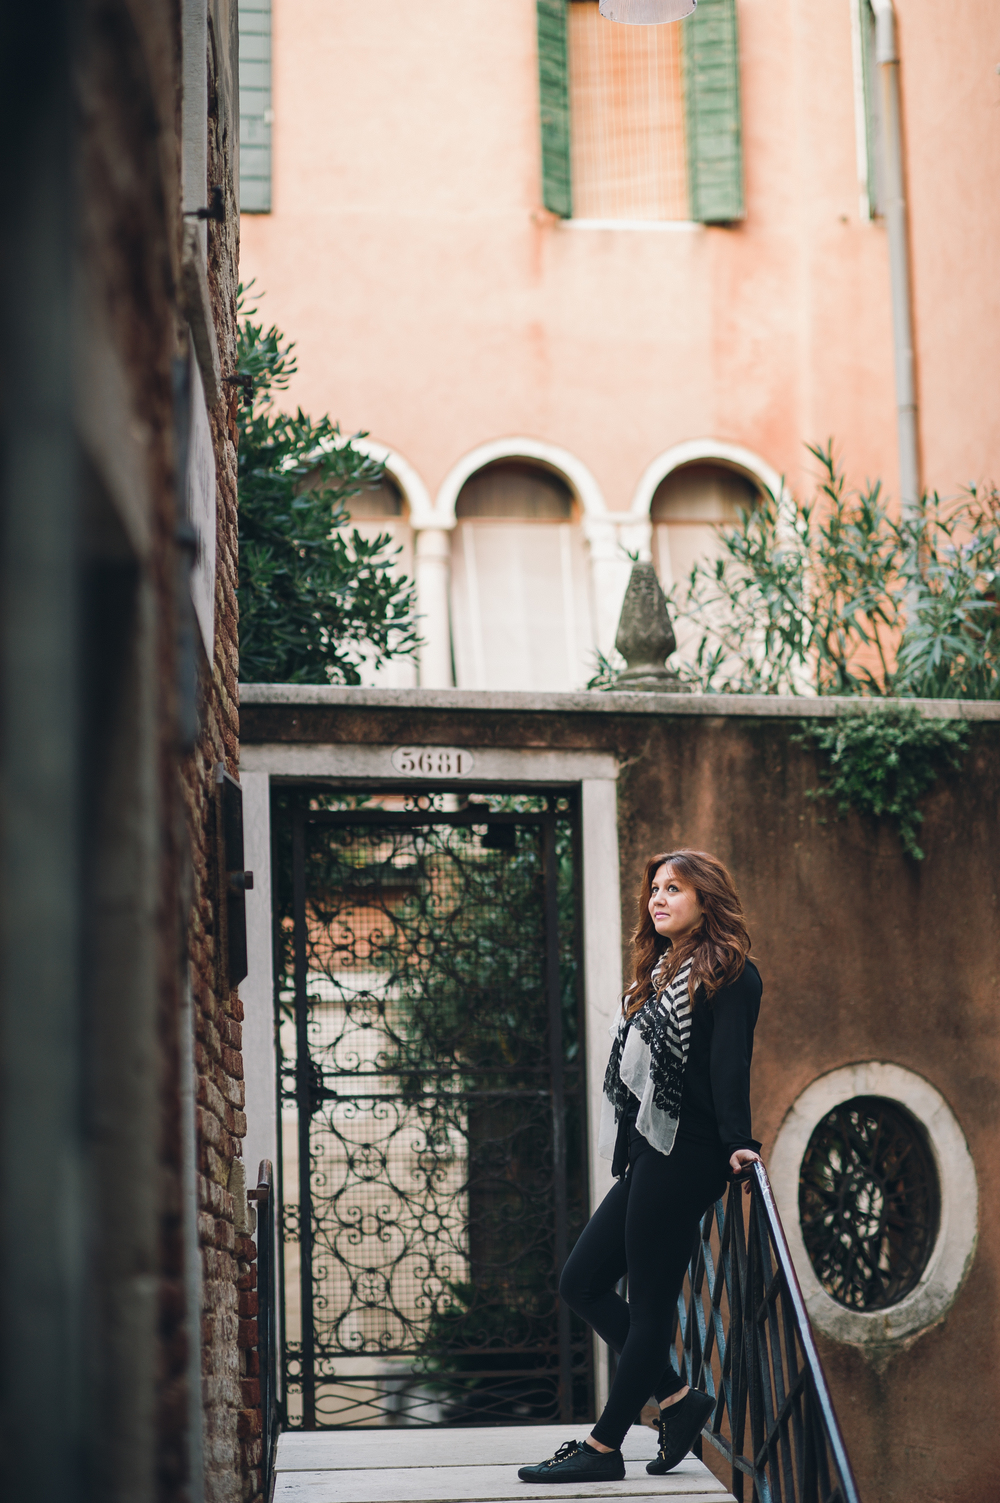 Flytographer   Vacation Photographer in Venice - Serena 3